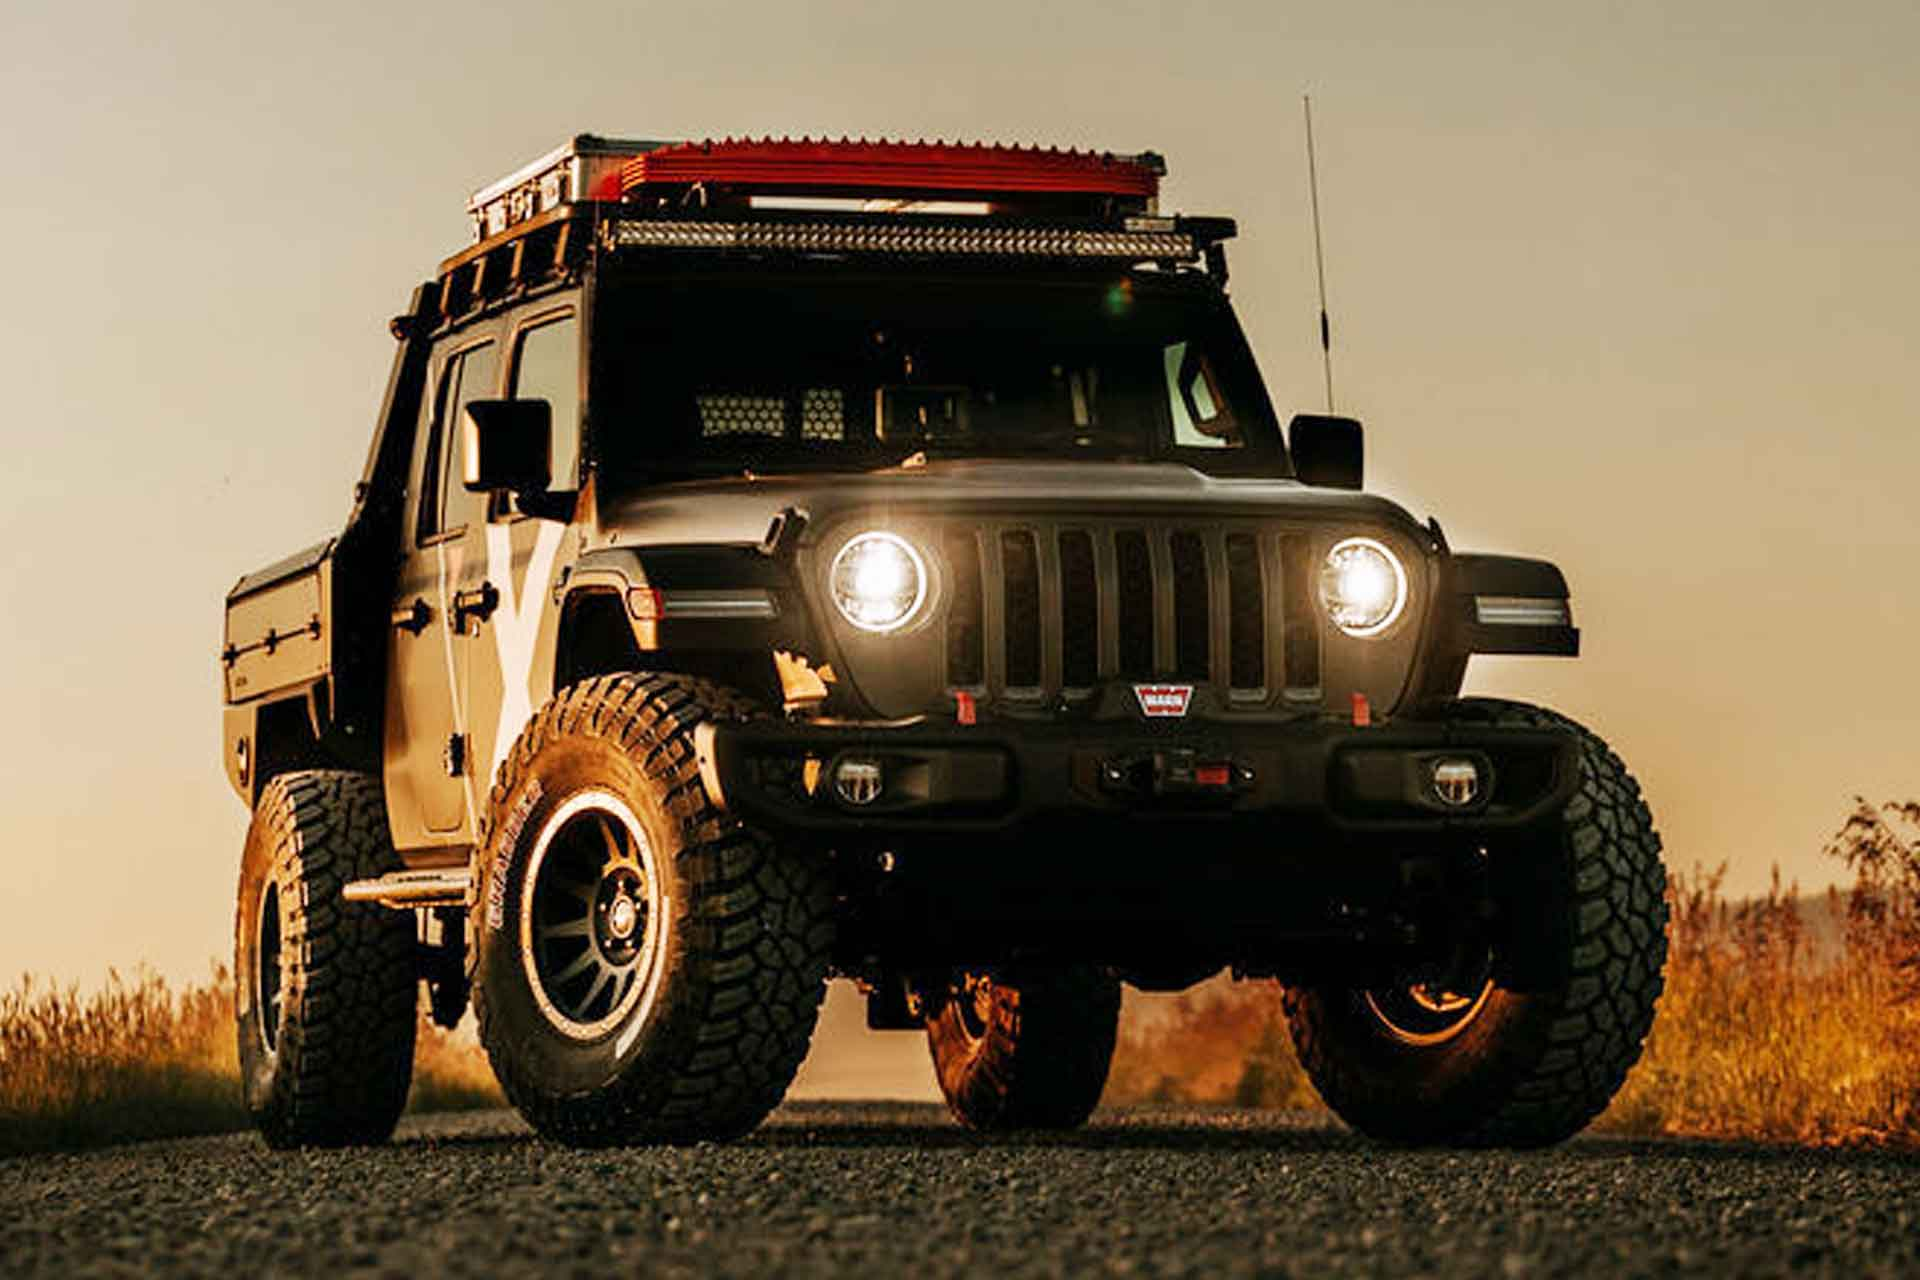 Expedition Overland Odin Jeep Gladiator Truck Uncrate